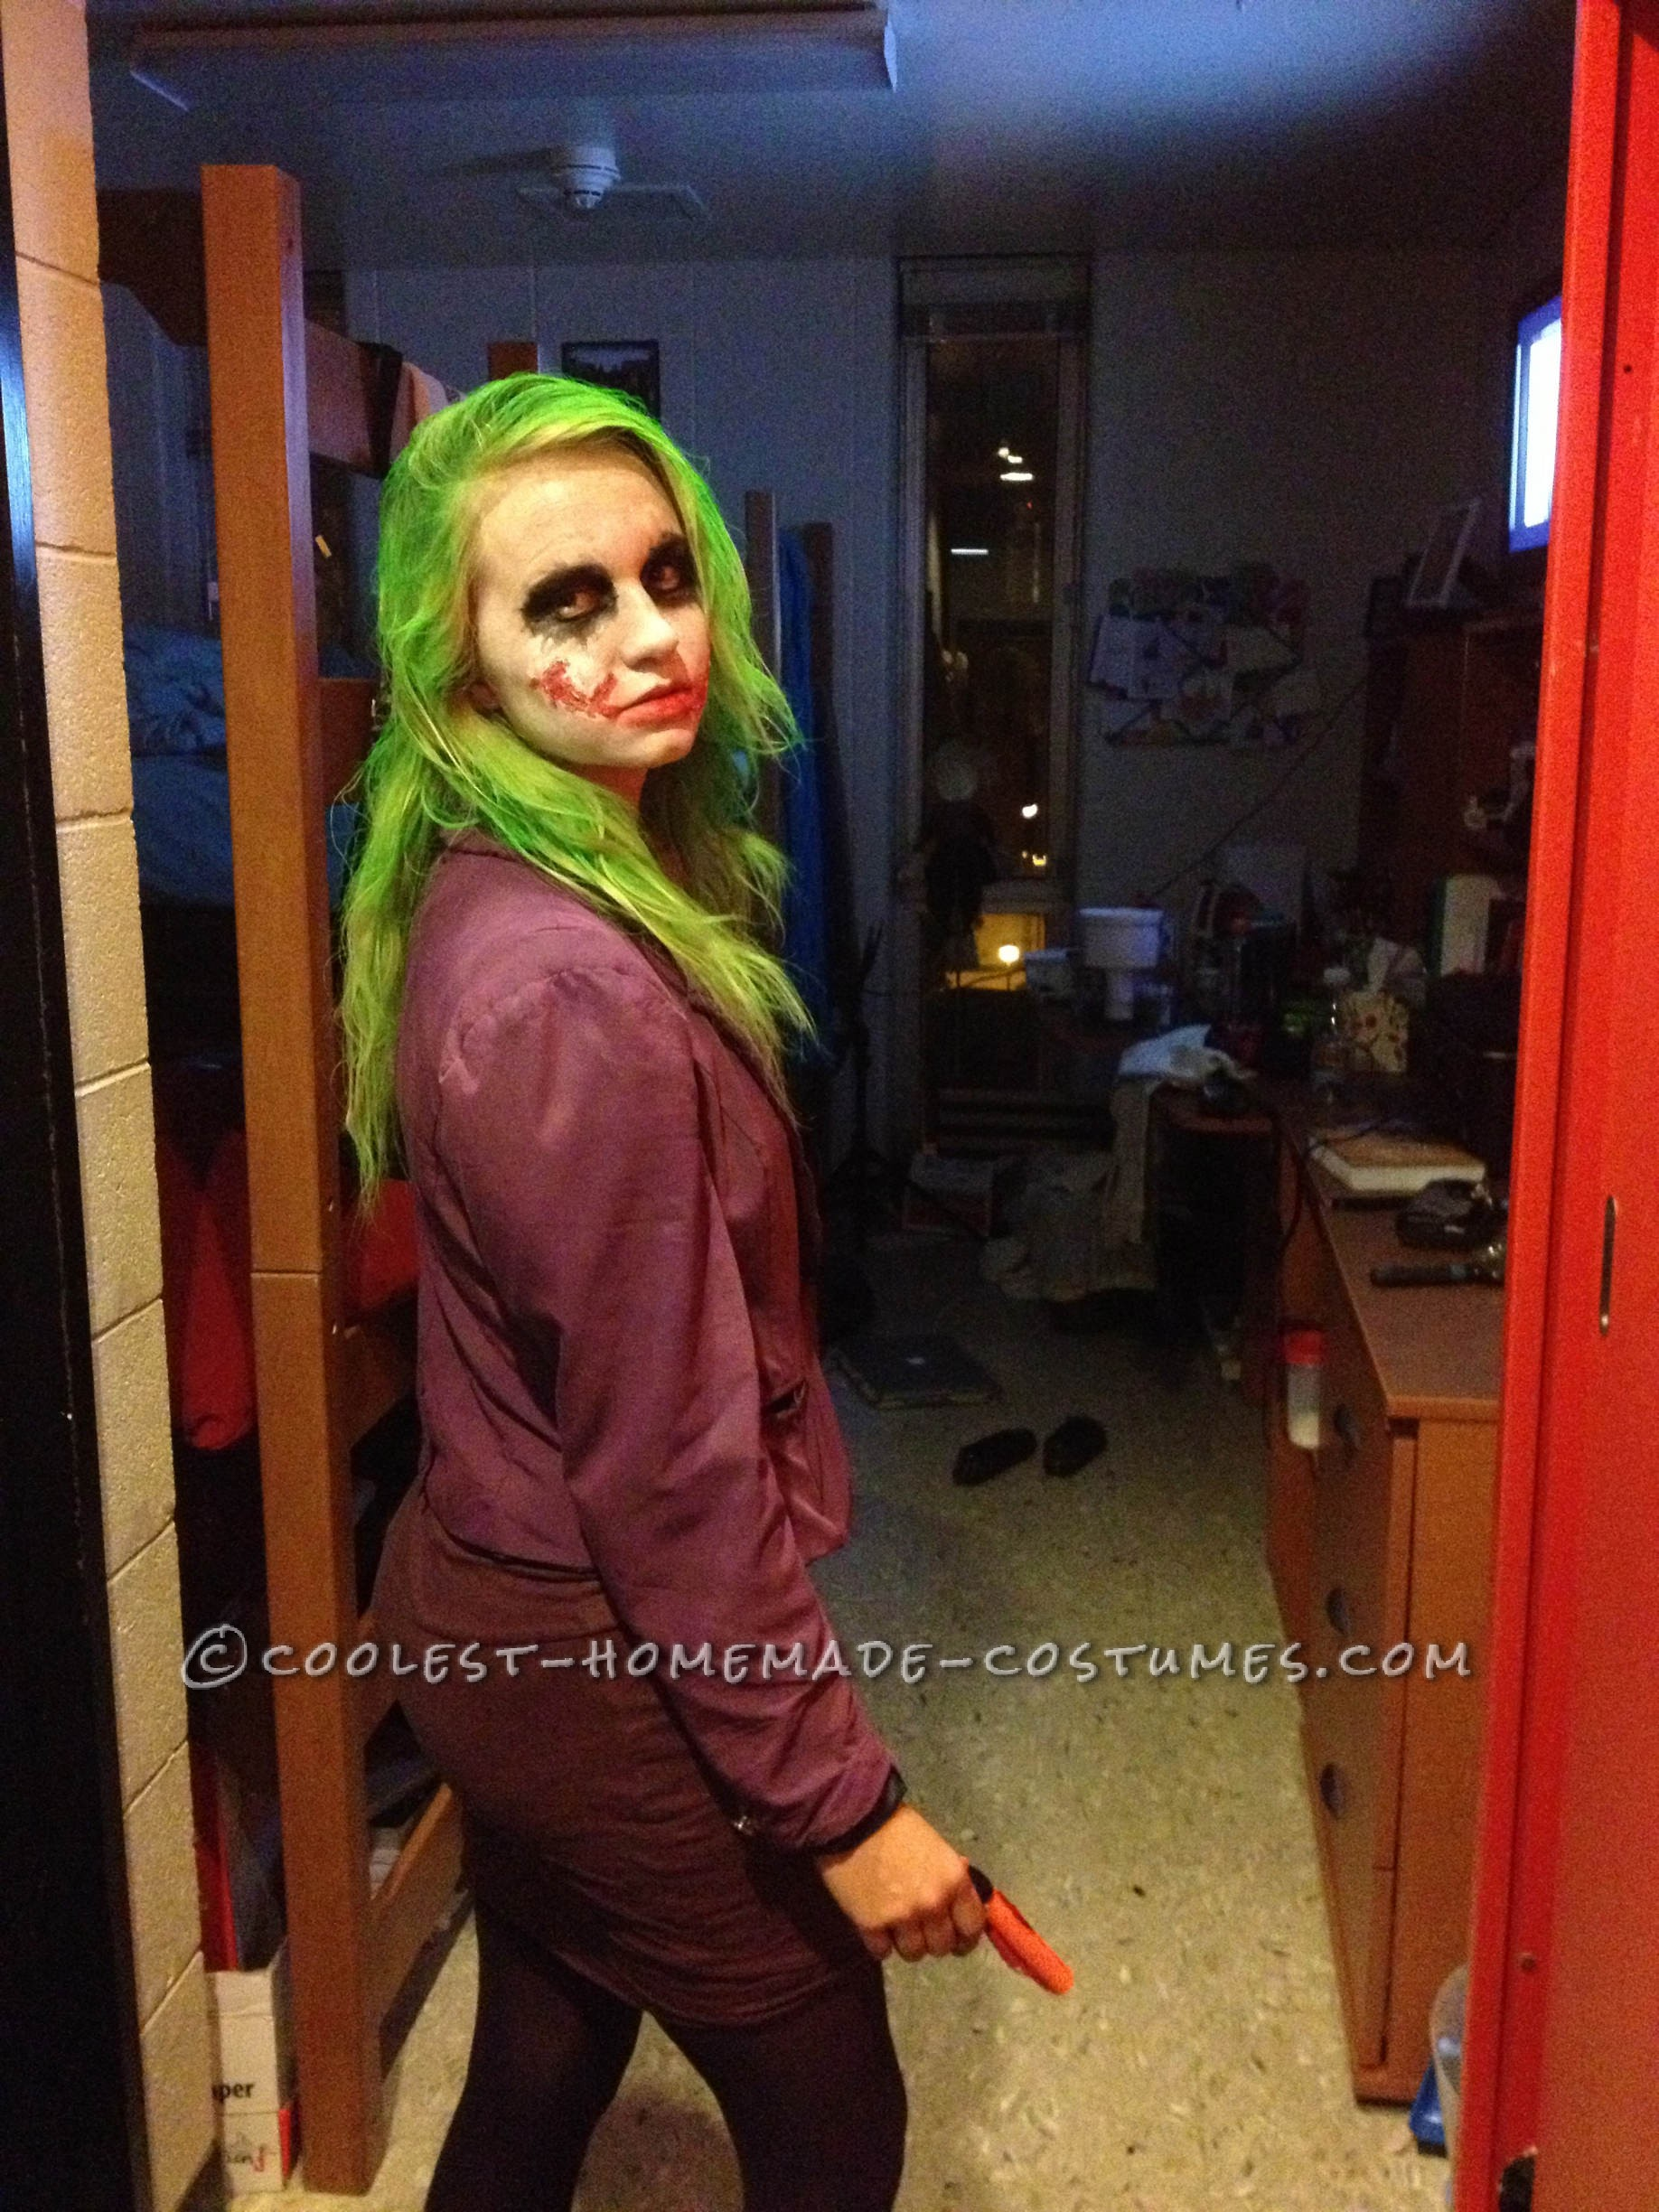 Full Makeup with costume